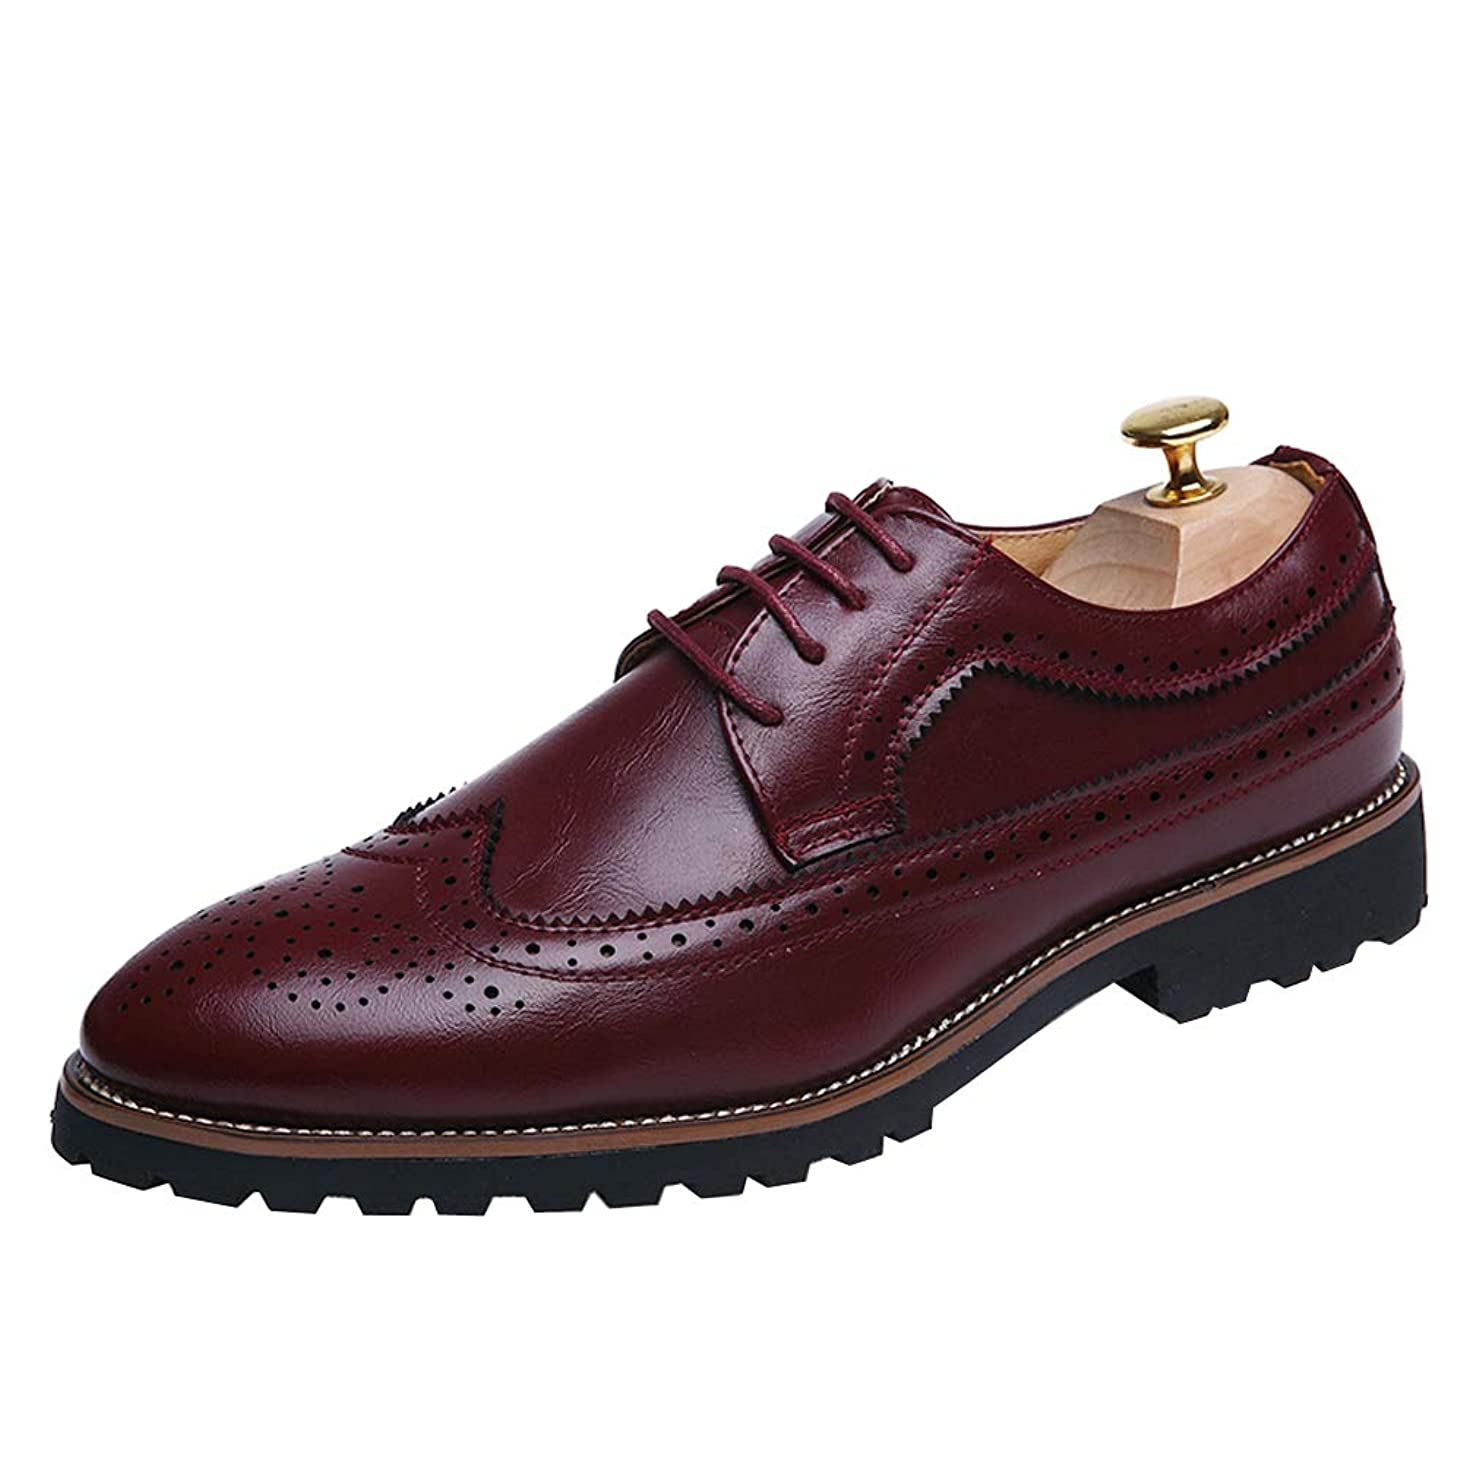 KUIBU Men's Classic Carved Cap Toe Lace-up Flat Oxford Dress Formal Wedding Office Business Shoes Boat Flats Shoes